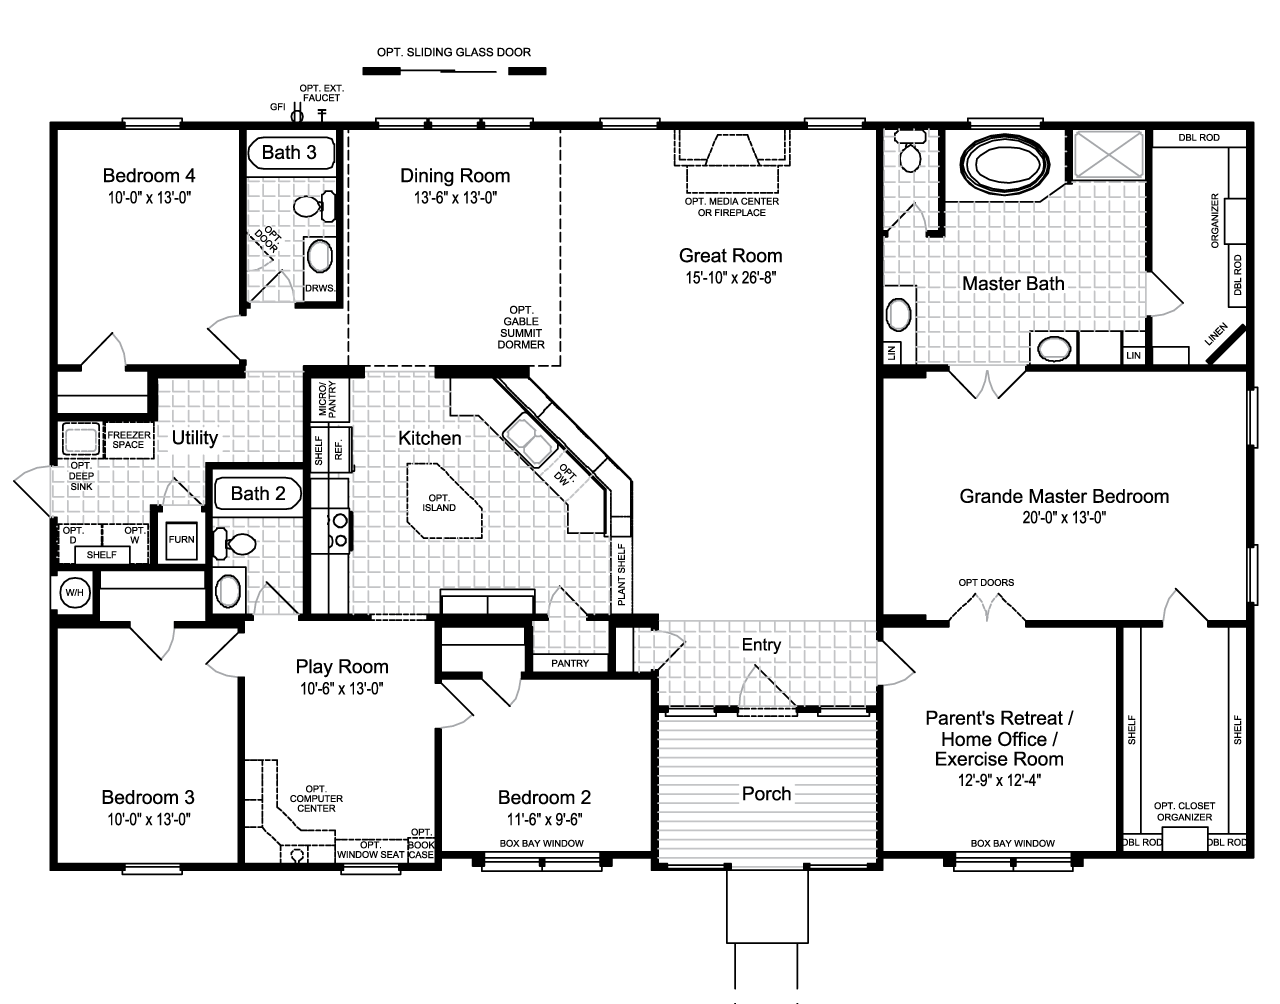 The Hacienda Ii Vr41664a Manufactured Home Floor Plan Or: home plan and design